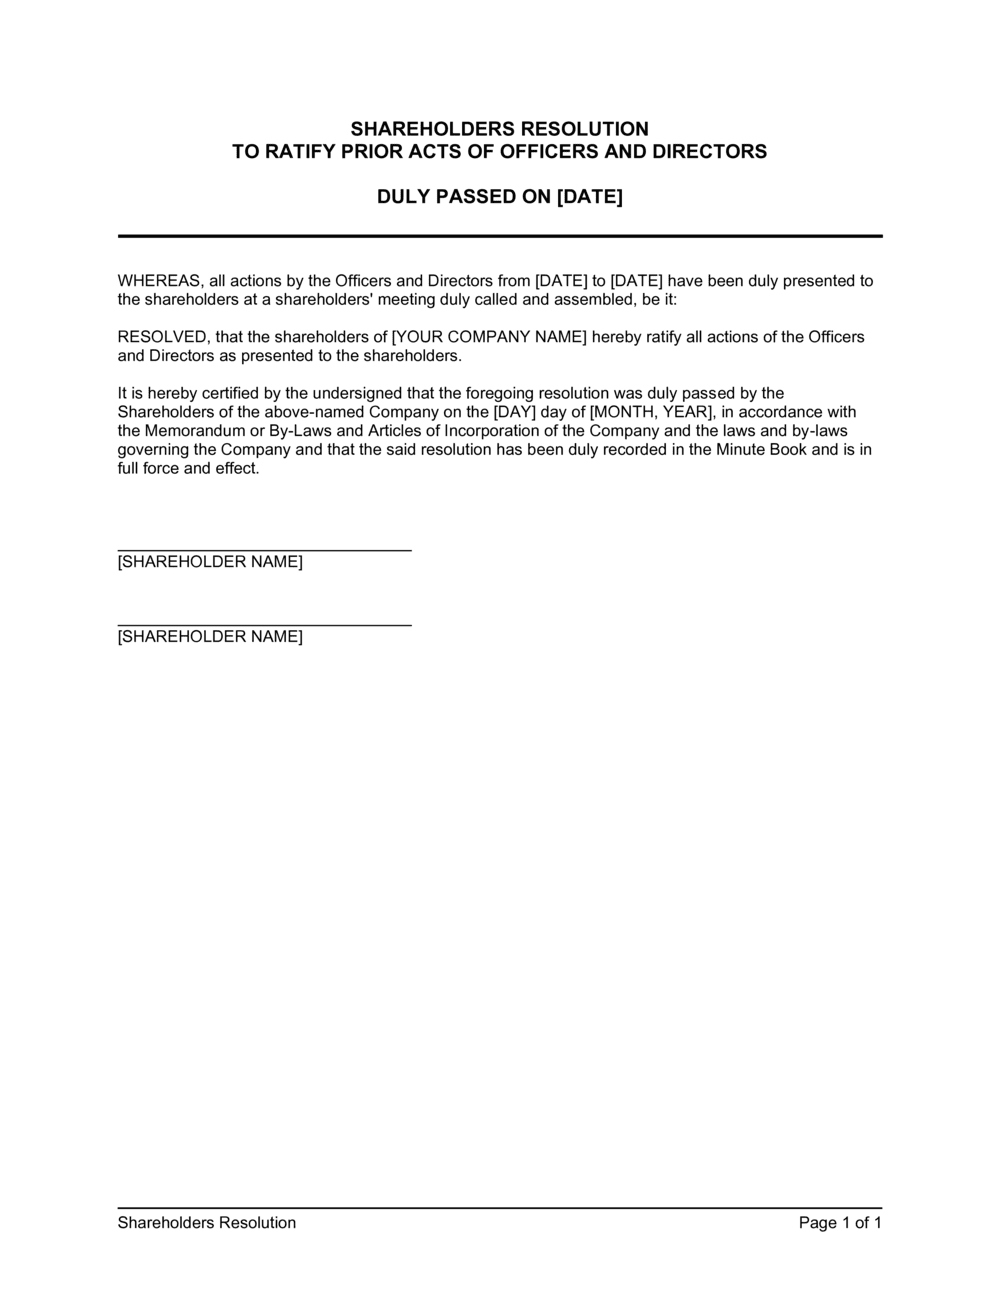 Business-in-a-Box's Shareholders Resolution Ratyfing Prior Acts of Officers Template